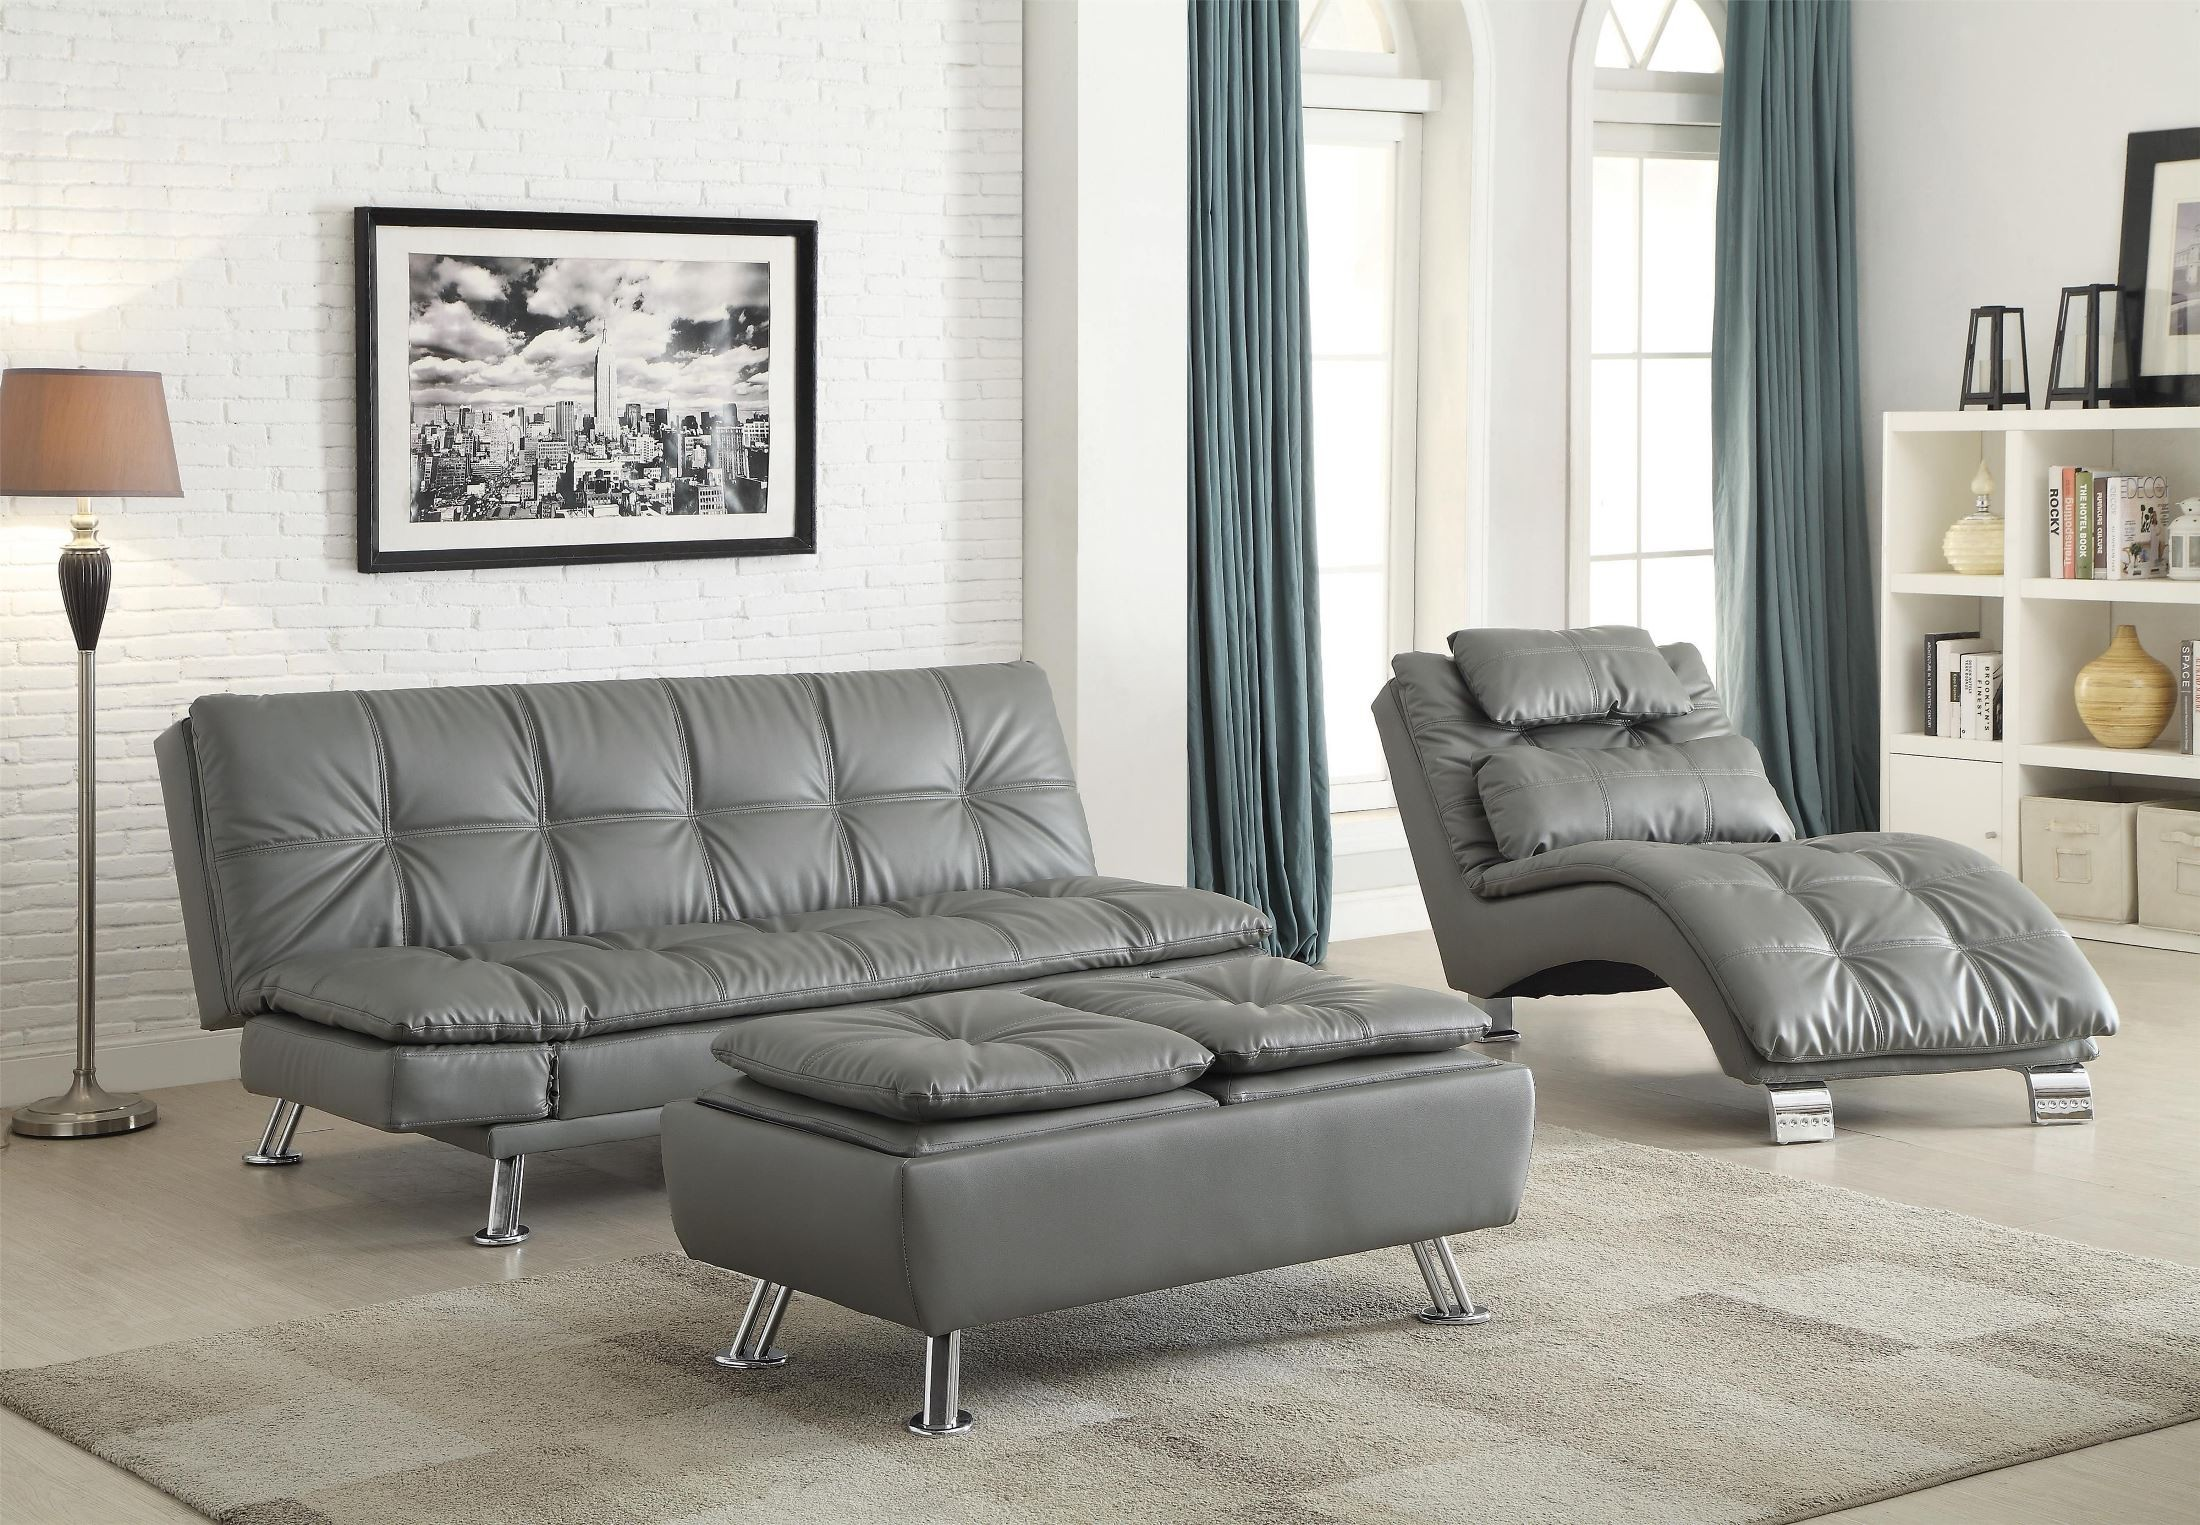 Beau Dilleston Futon Style Living Room Set From Coaster (500096) | Coleman  Furniture